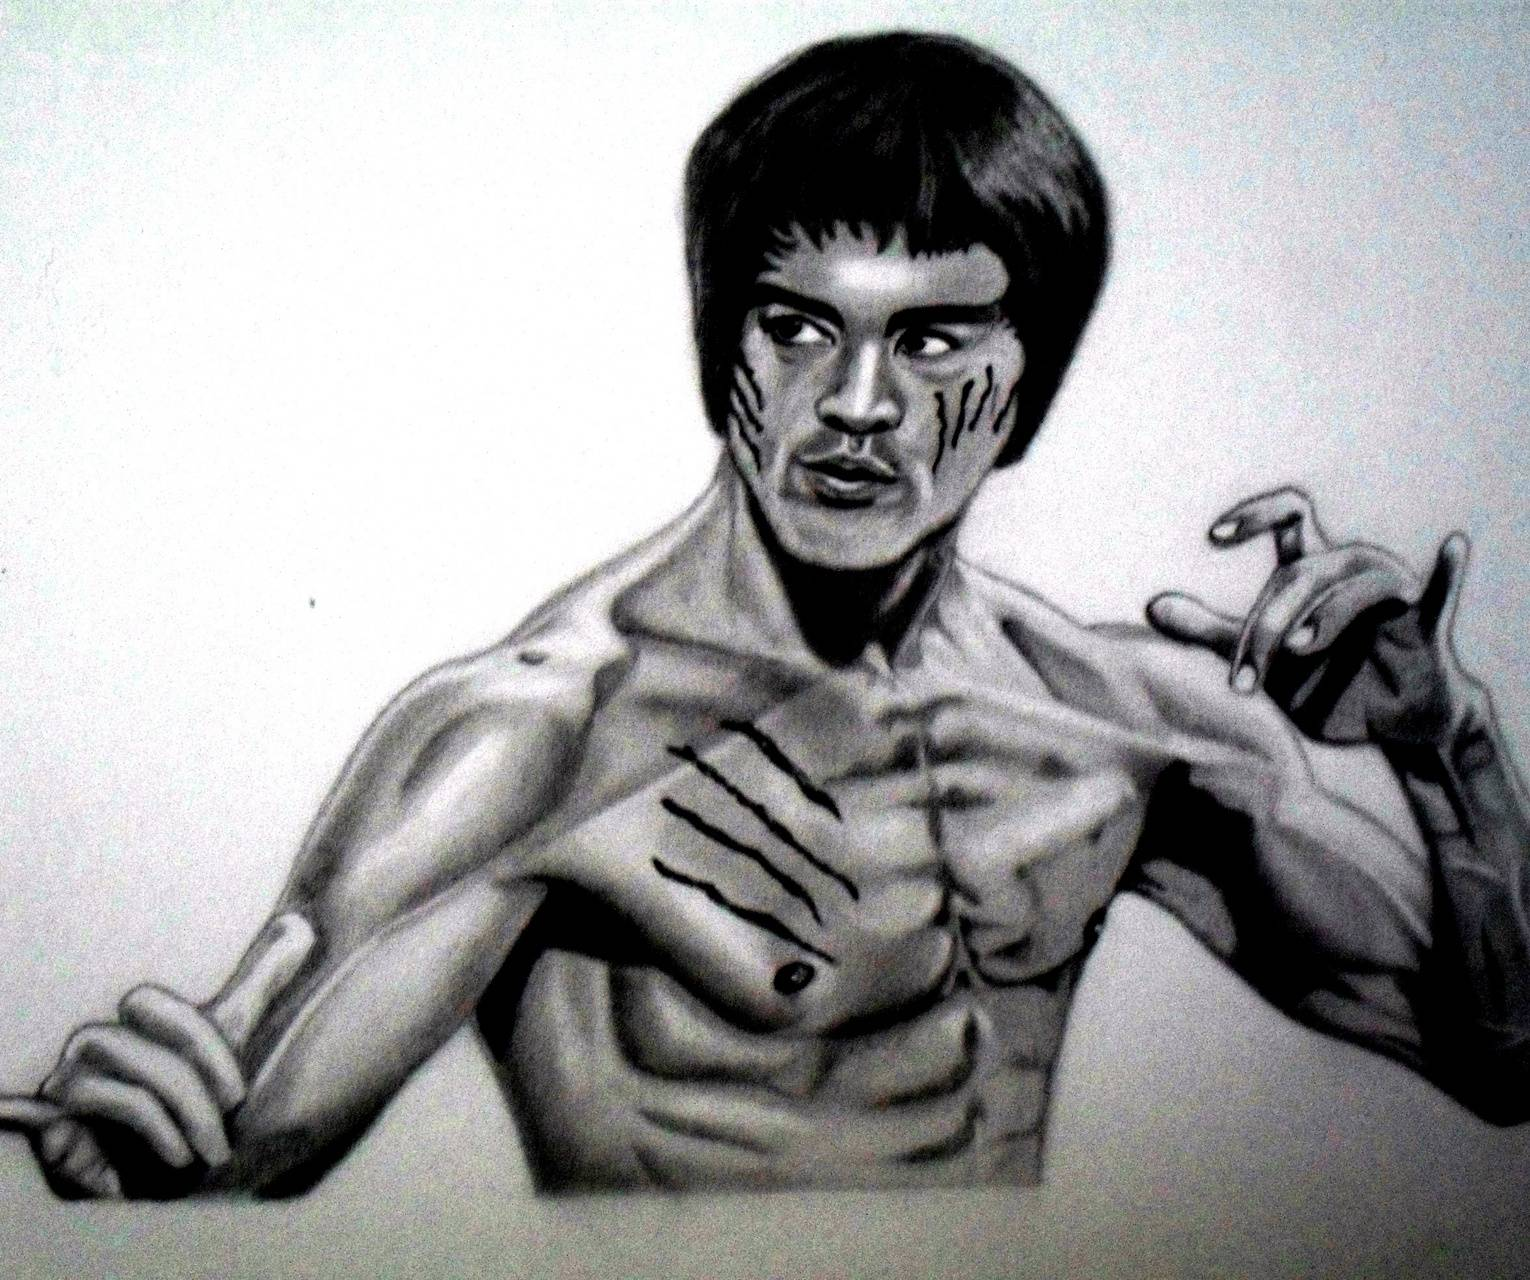 Bruce Lee Wallpaper By Cain0005 Fa Free On Zedge